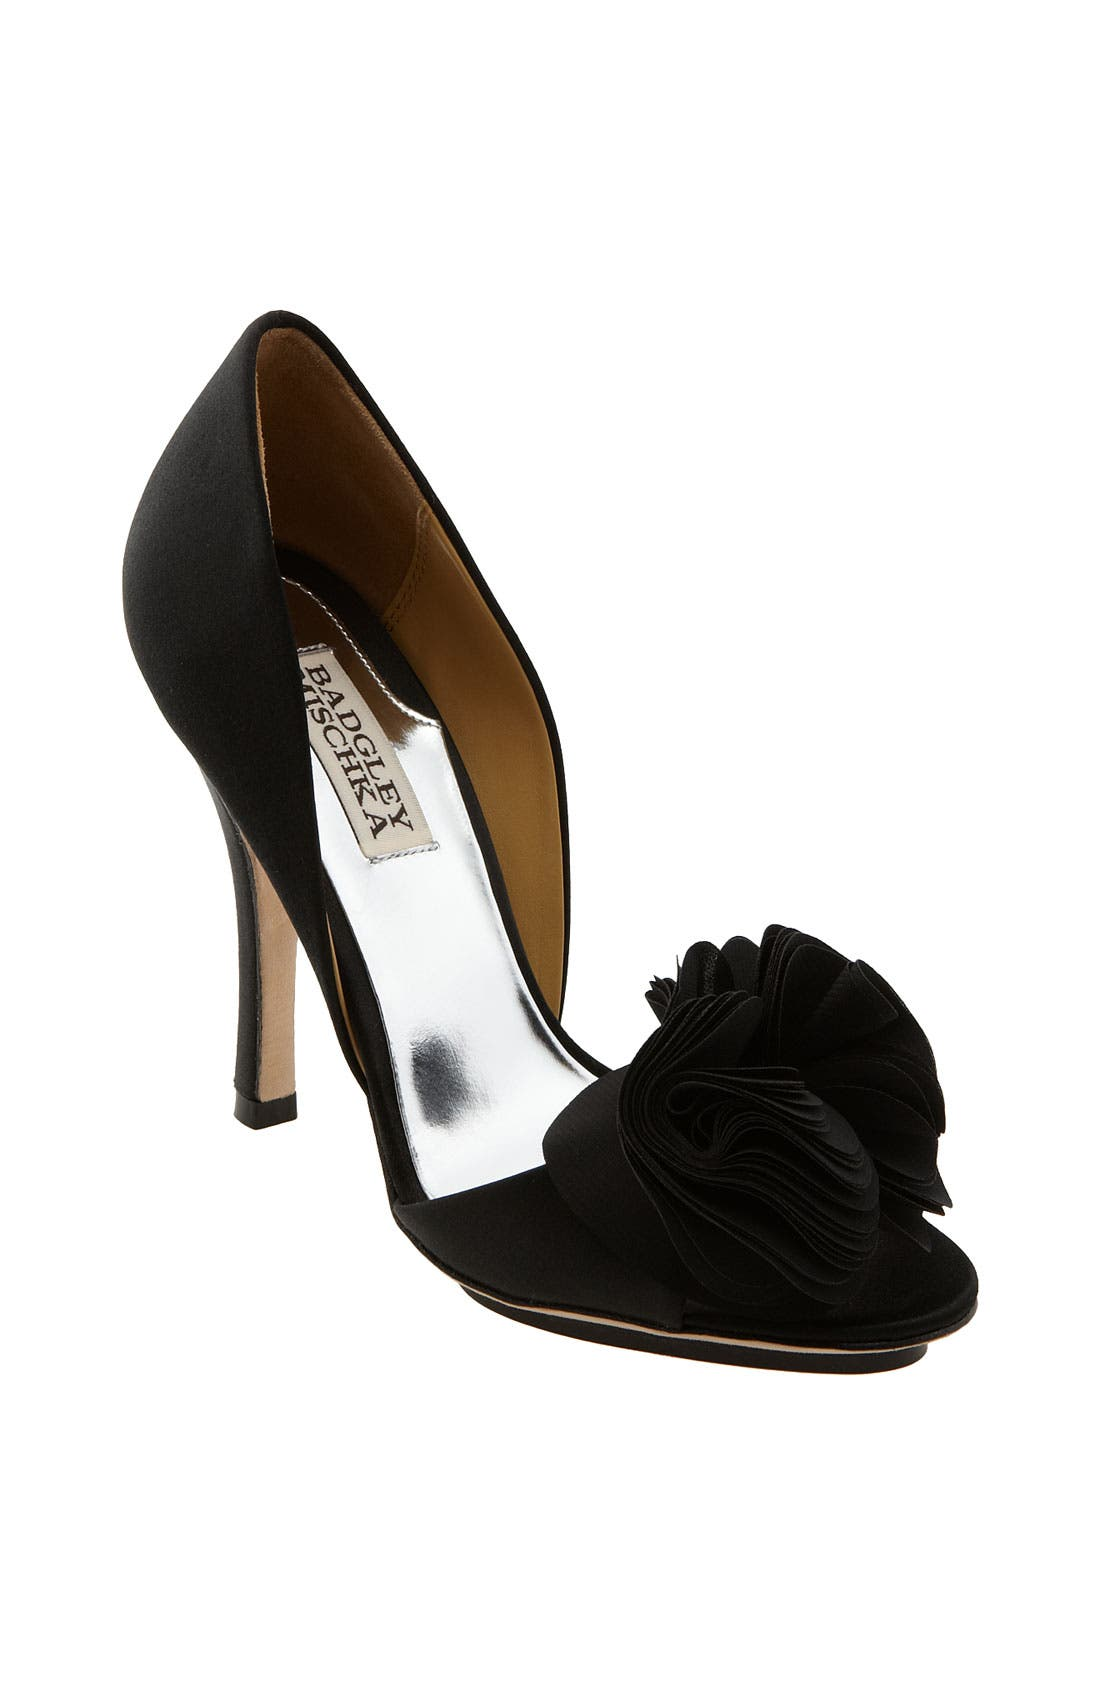 BADGLEY MISCHKA COLLECTION Badgley Mischka 'Randall' Pump, Main, color, 015